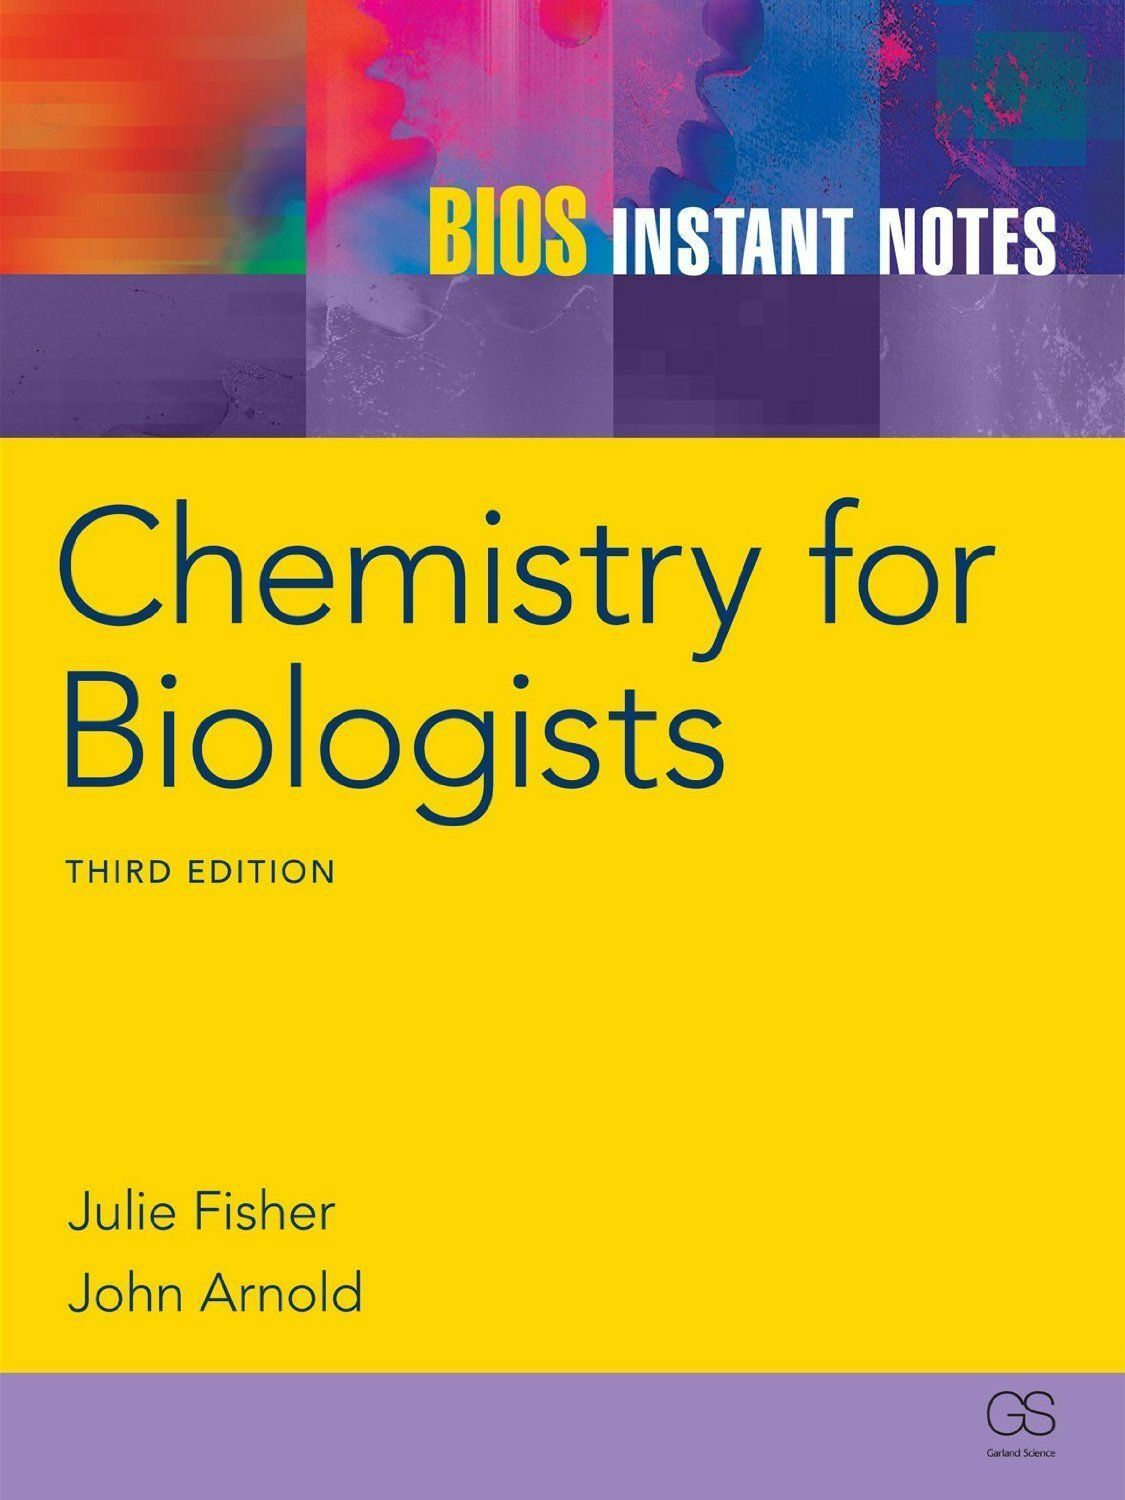 BIOS Instant Notes in Chemistry for Biologists by Julie Fisher, John Arnold  (Paperback, 2012)